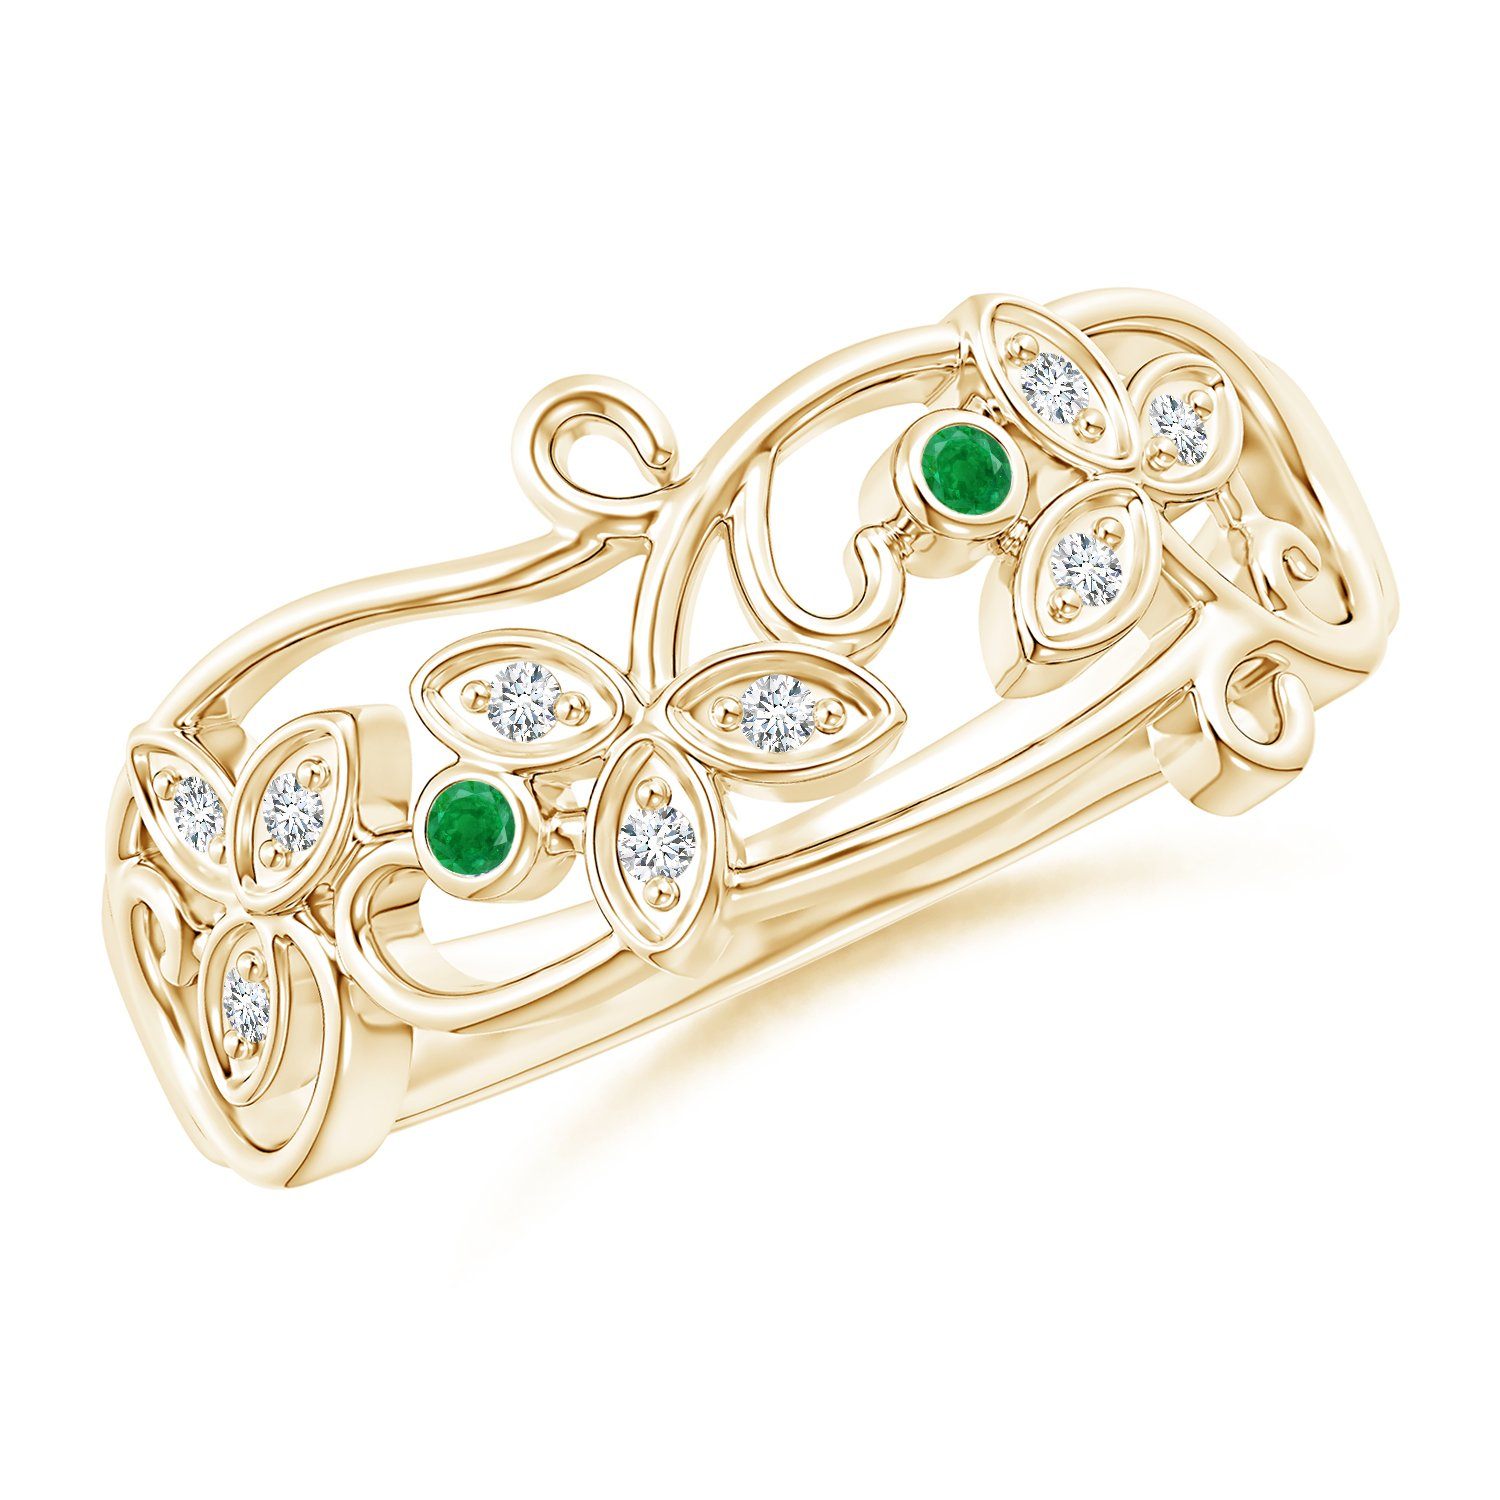 Vintage Style Emerald and Diamond Flower Scroll Ring in 14K Yellow Gold (1.5mm Emerald)